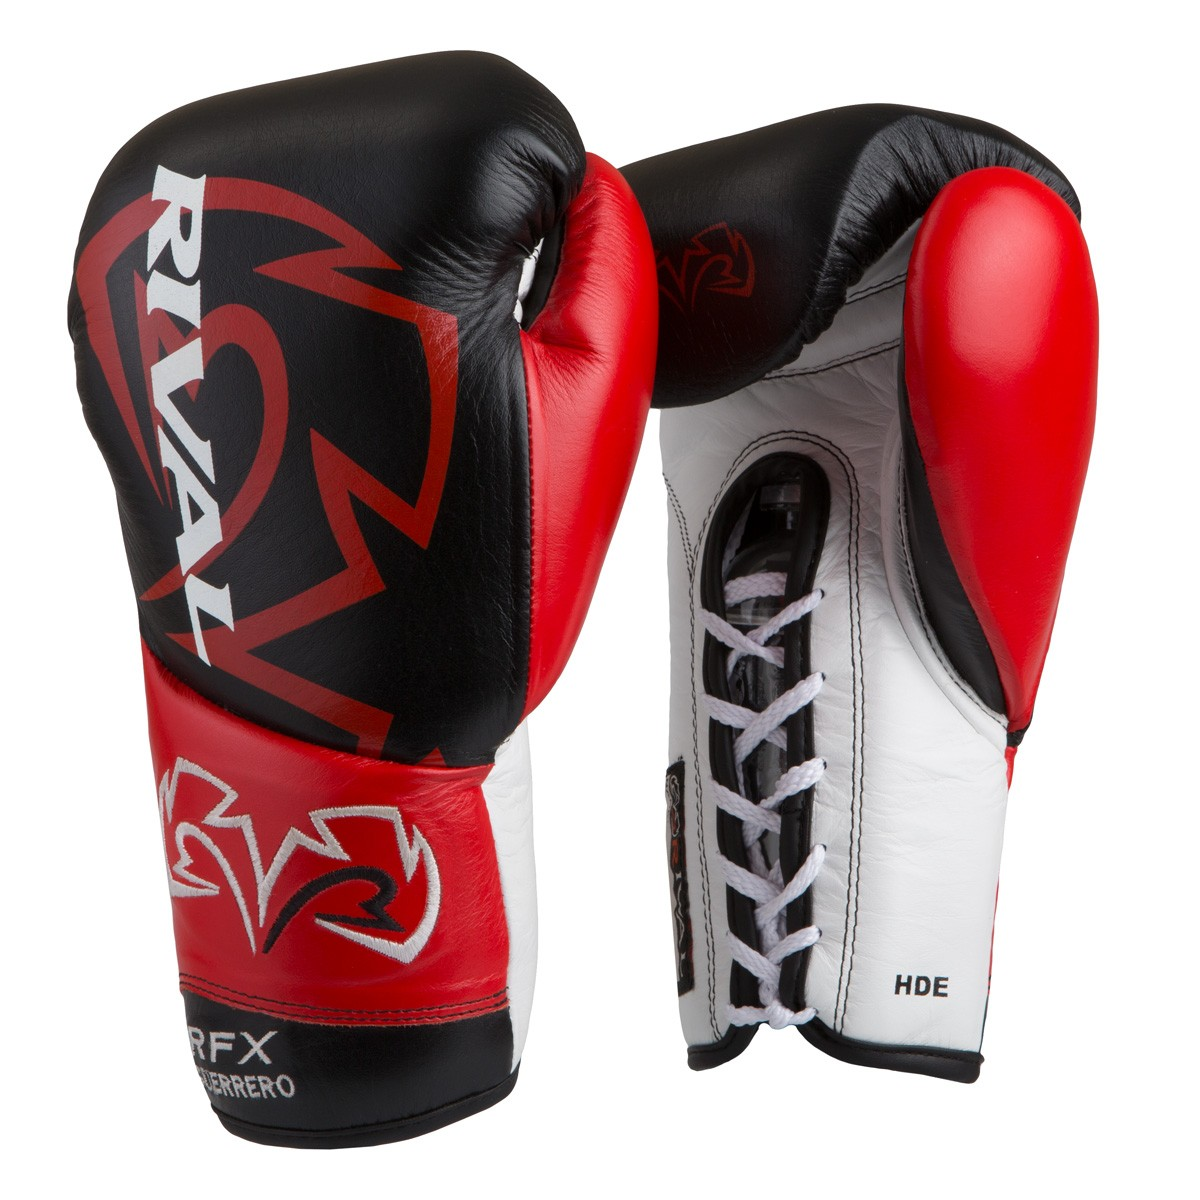 Rival Rfx Guerrero Pro Fight Gloves Black Red